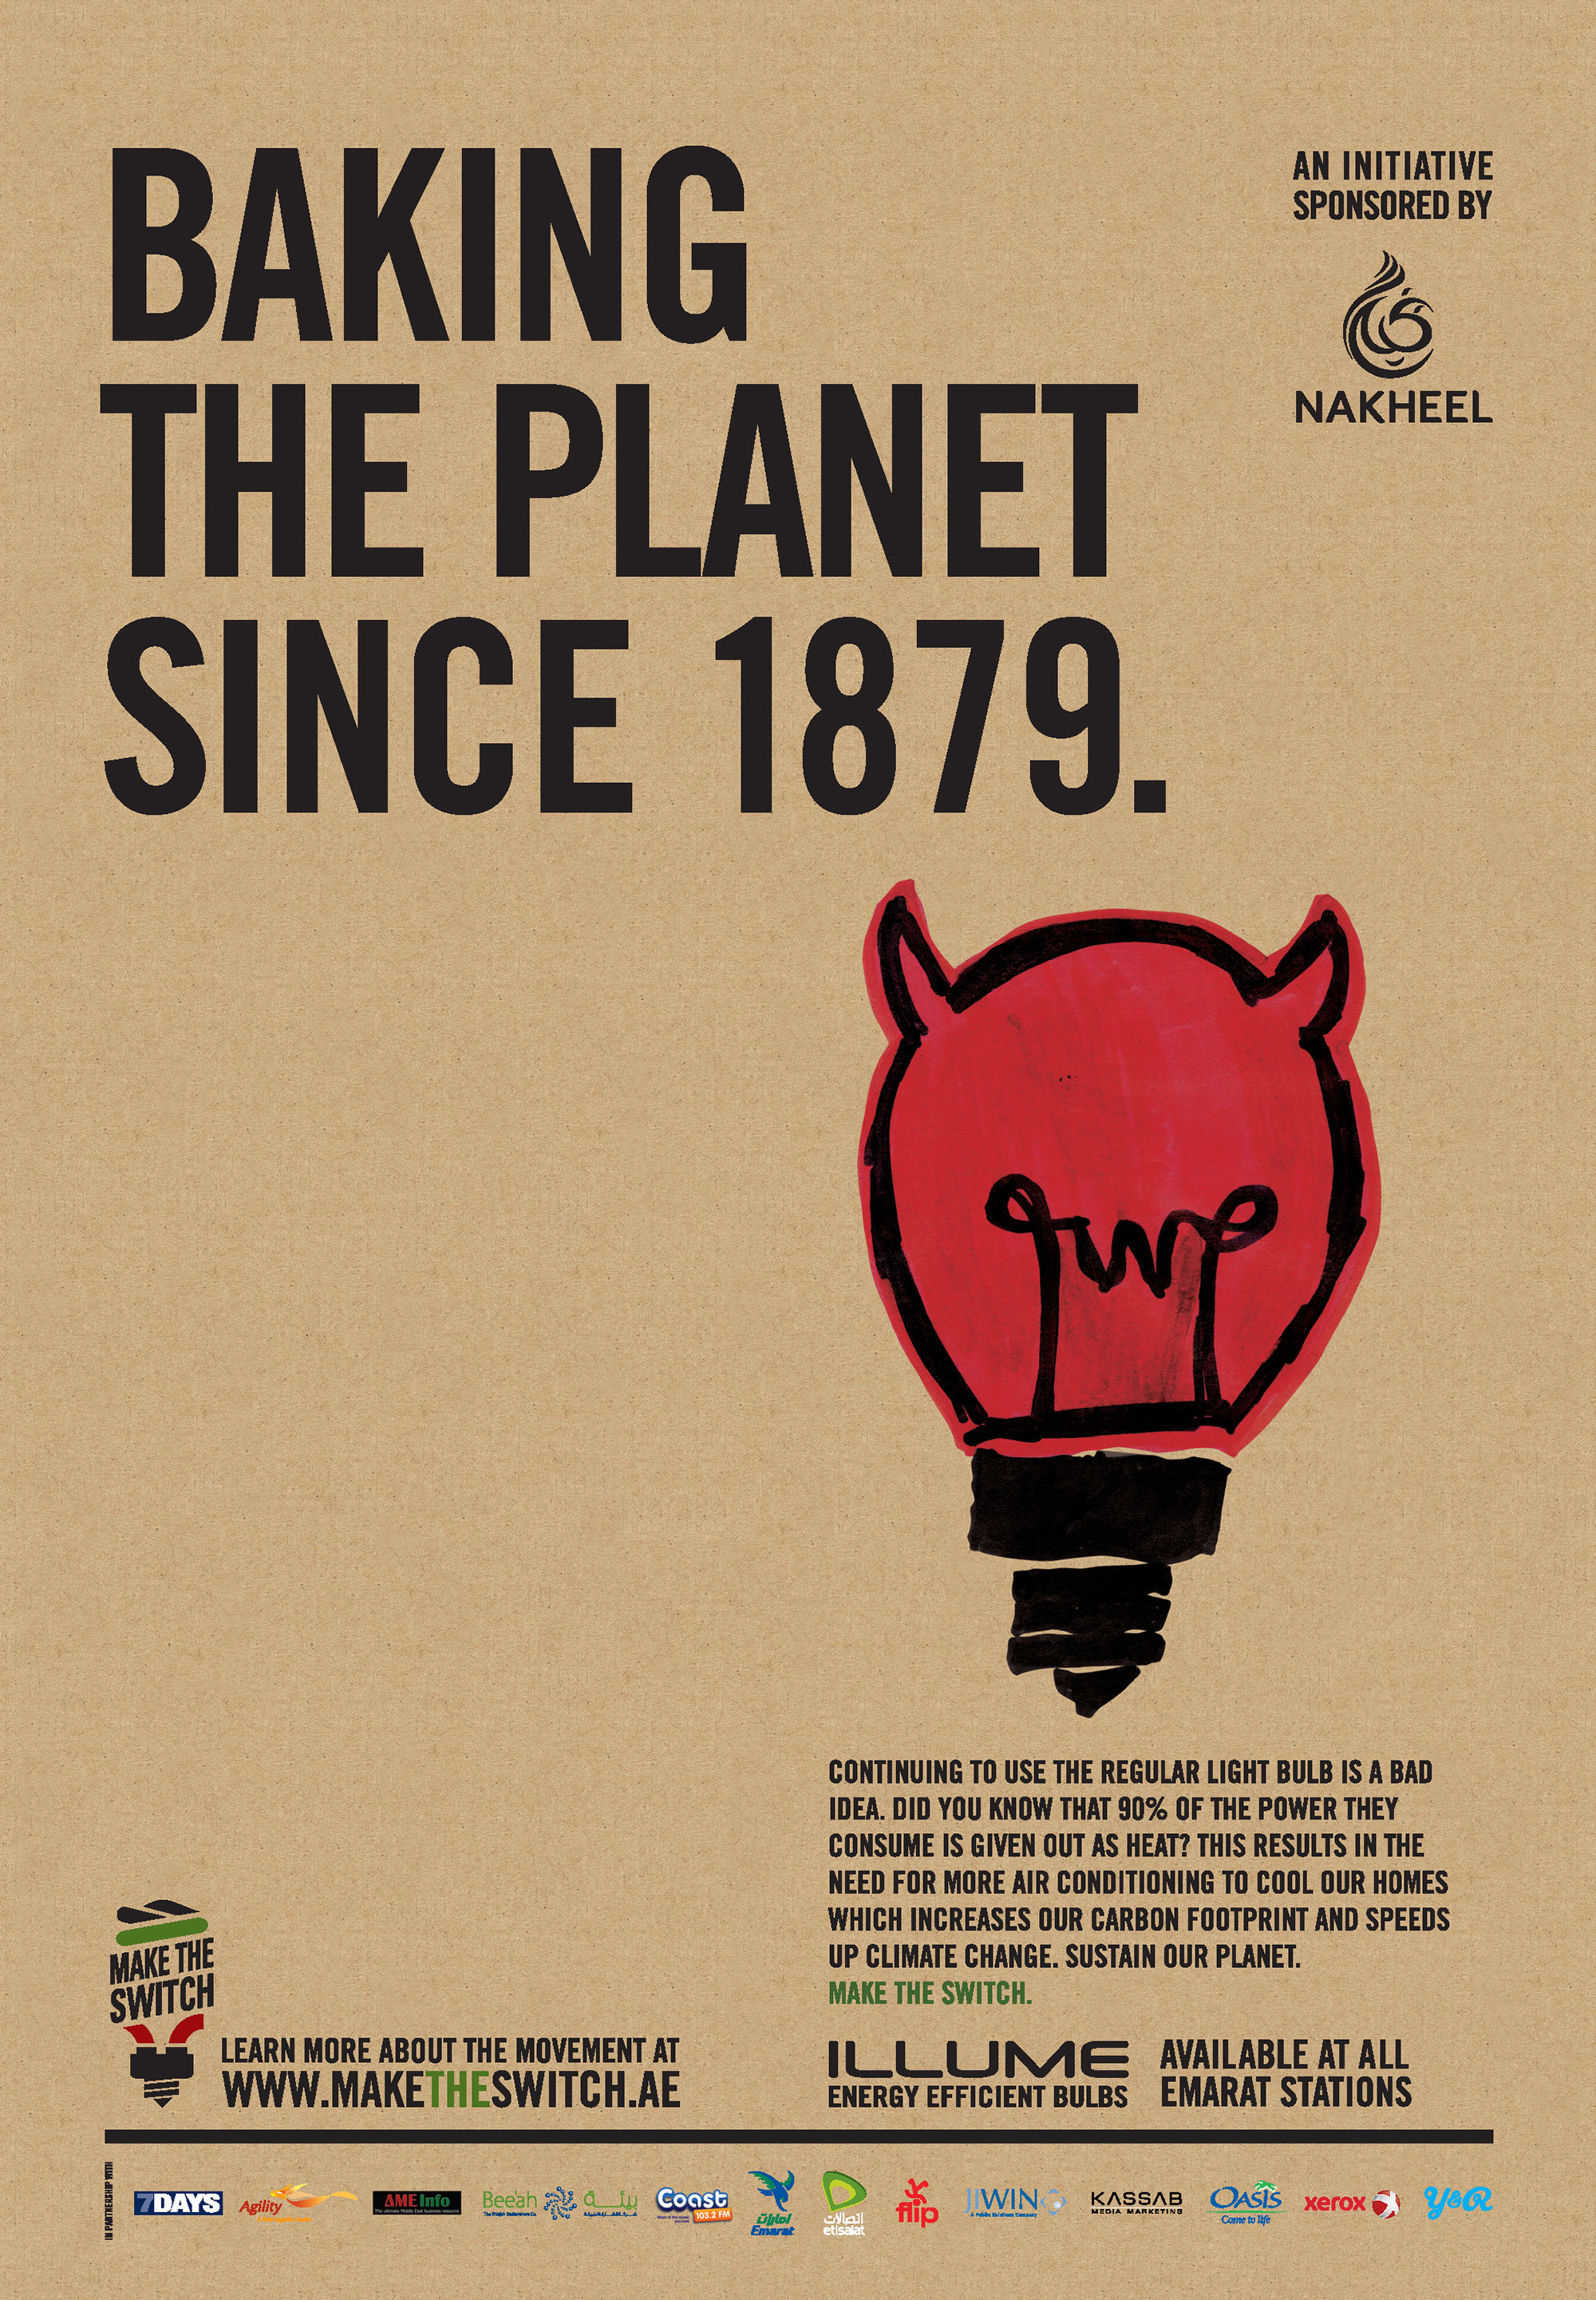 Baking the planet since 1879.